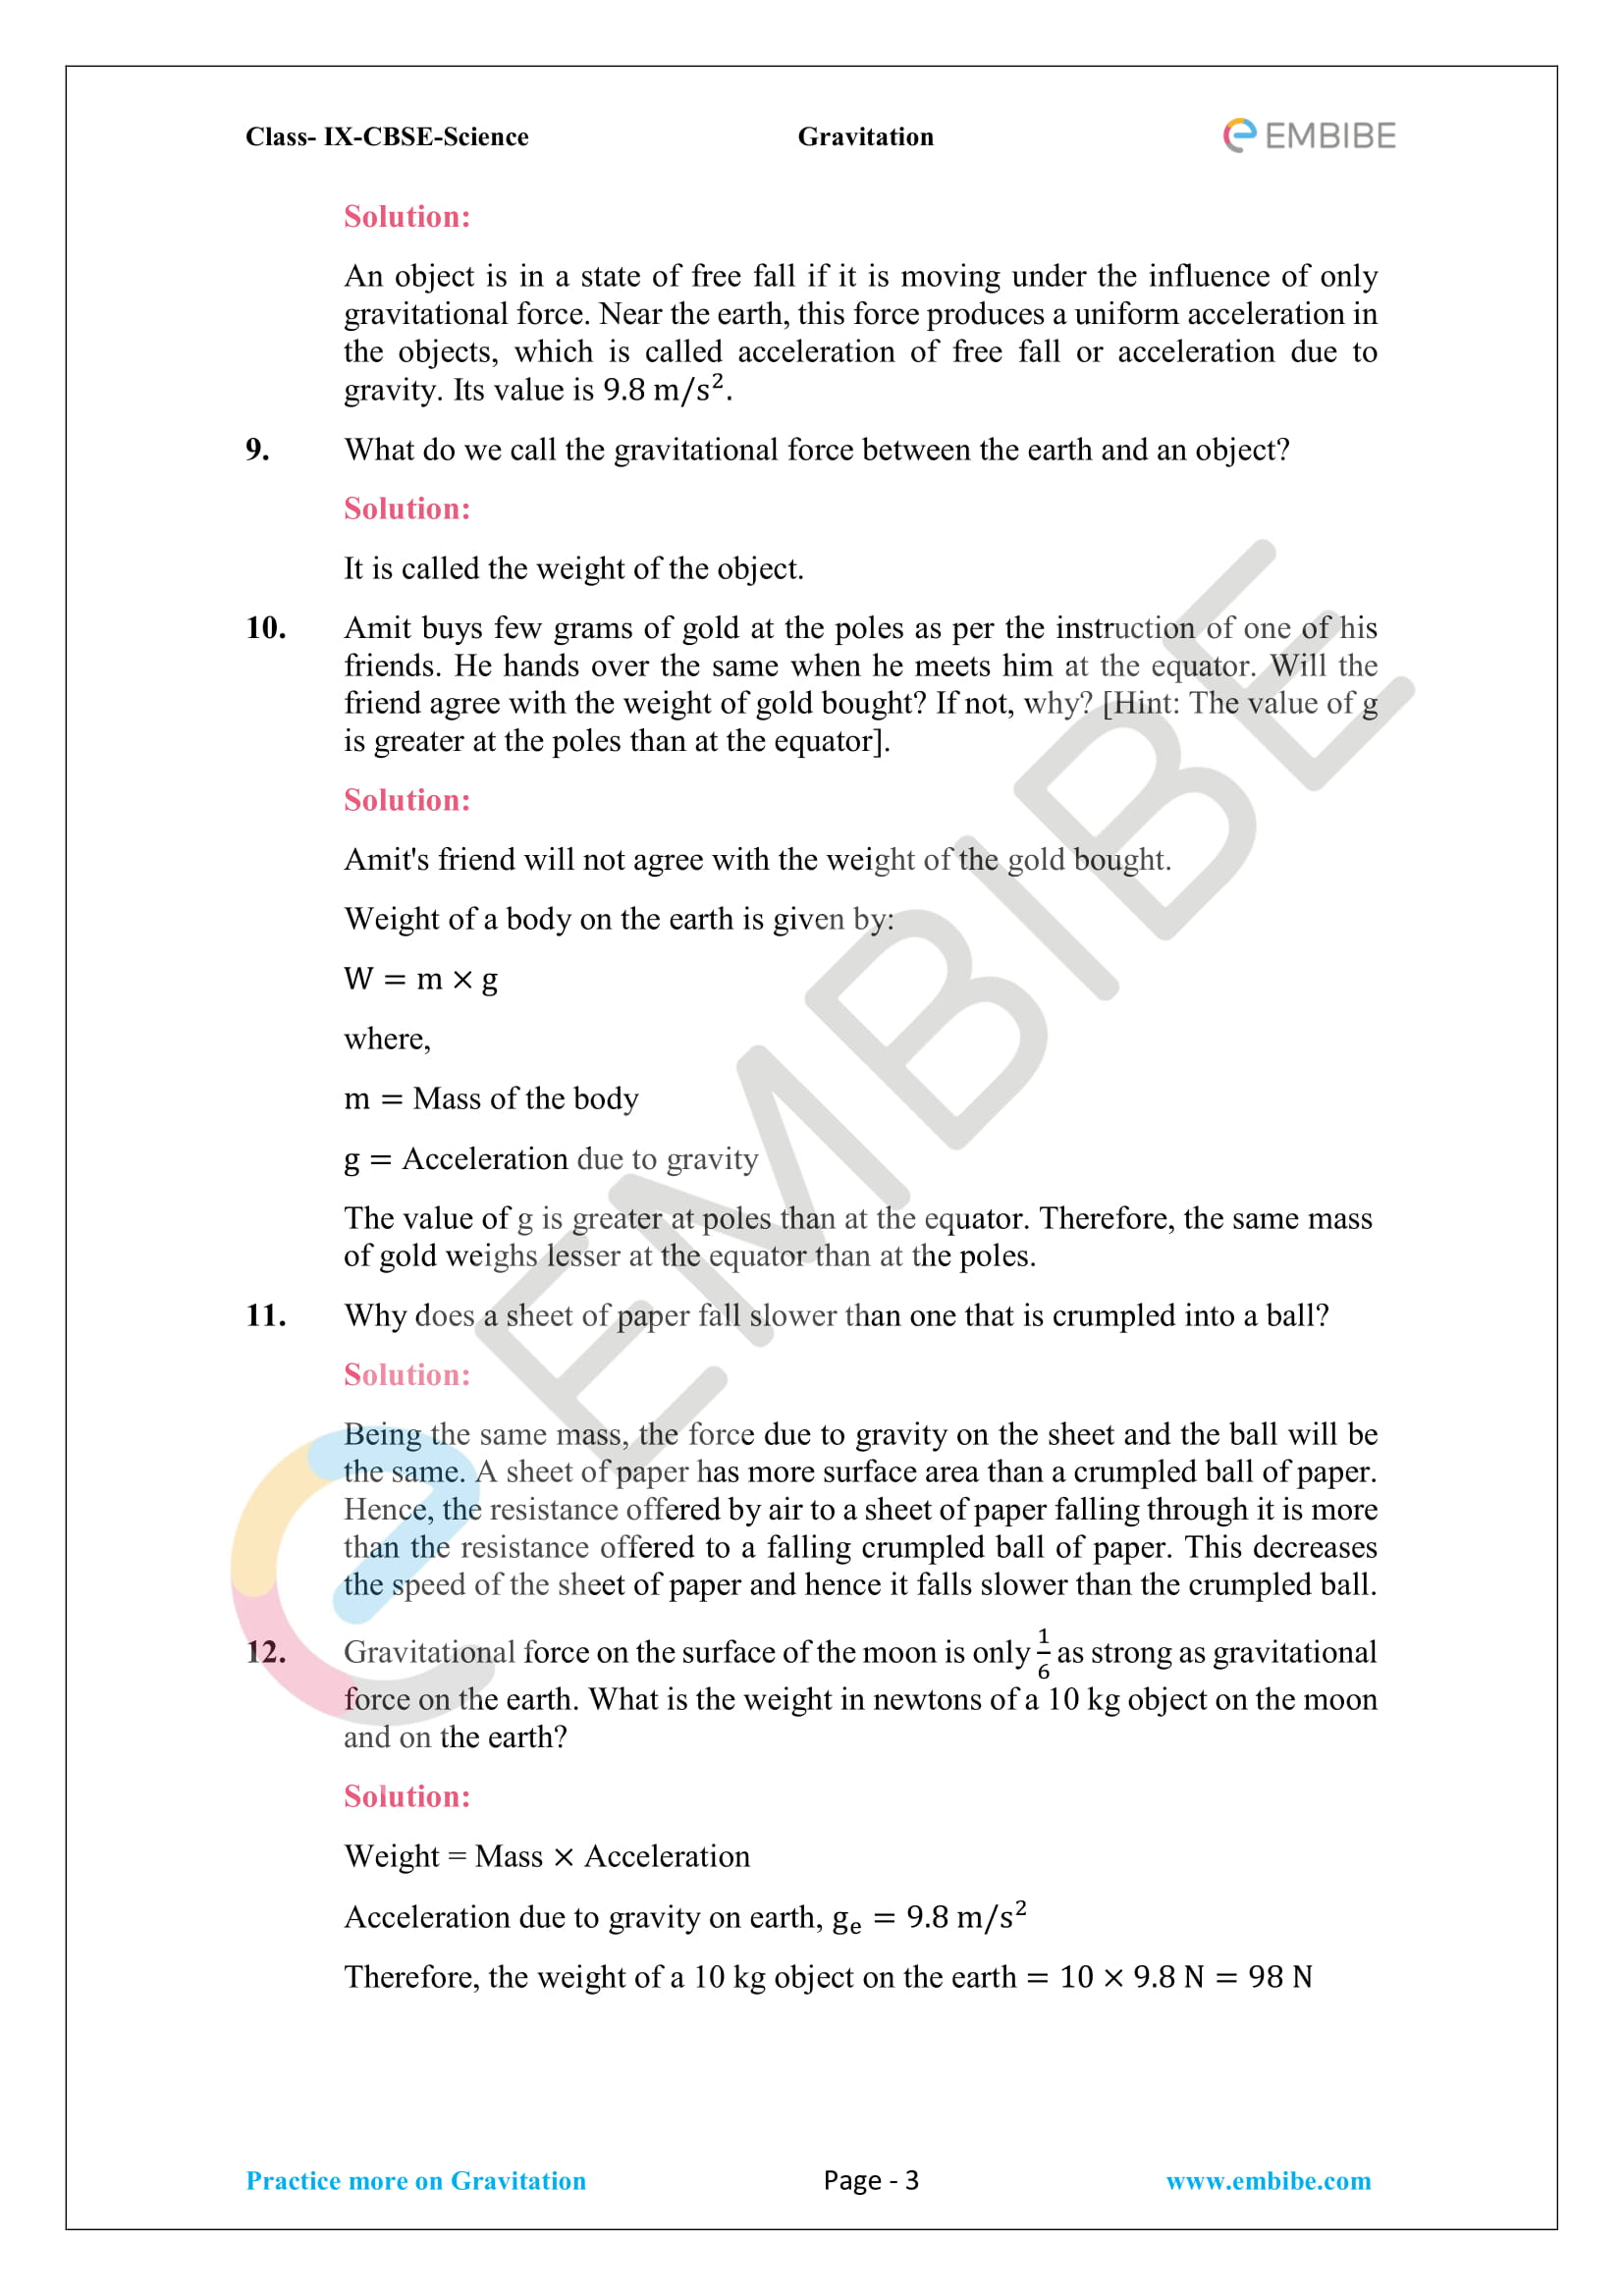 CBSE NCERT Solutions For Class 9 Science Chapter 10 – Gravitation - 3